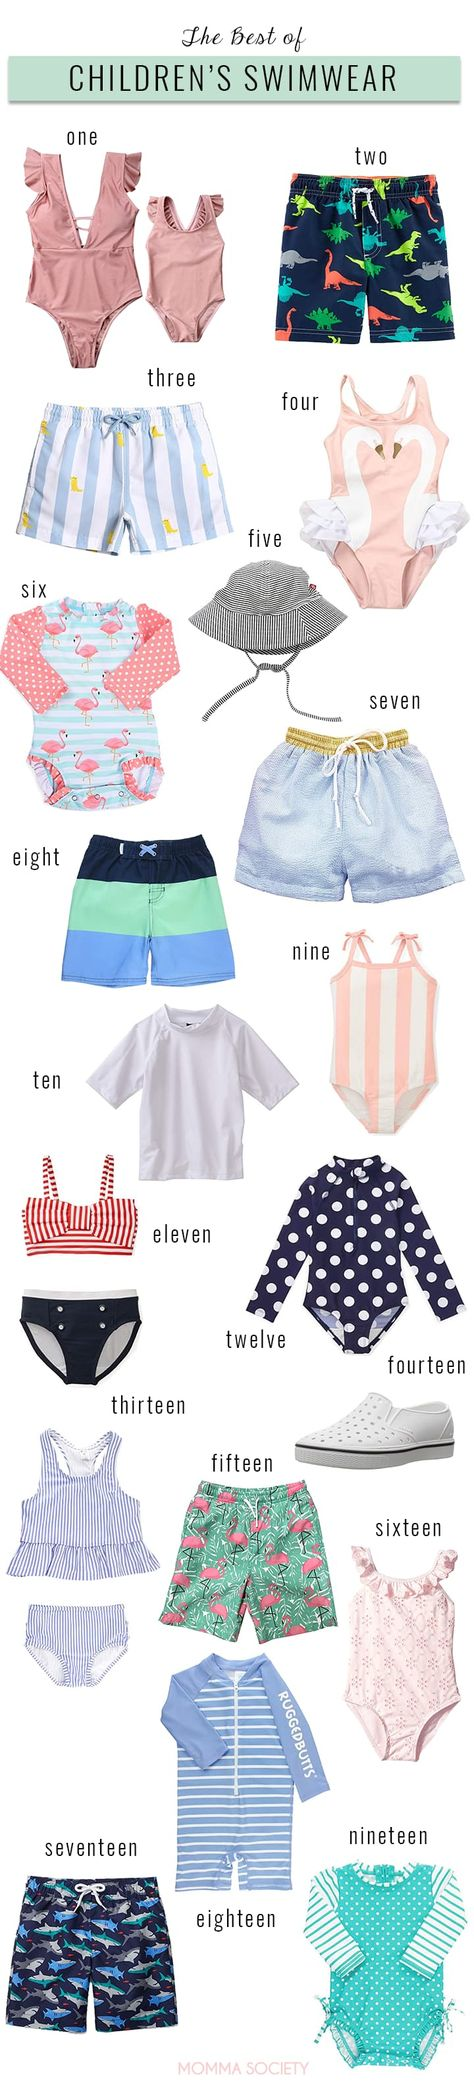 f8ba713a7 The Best of Children's Swimsuits for 2019 - A roundup of the best amazon  swimwear for babies and toddlers.